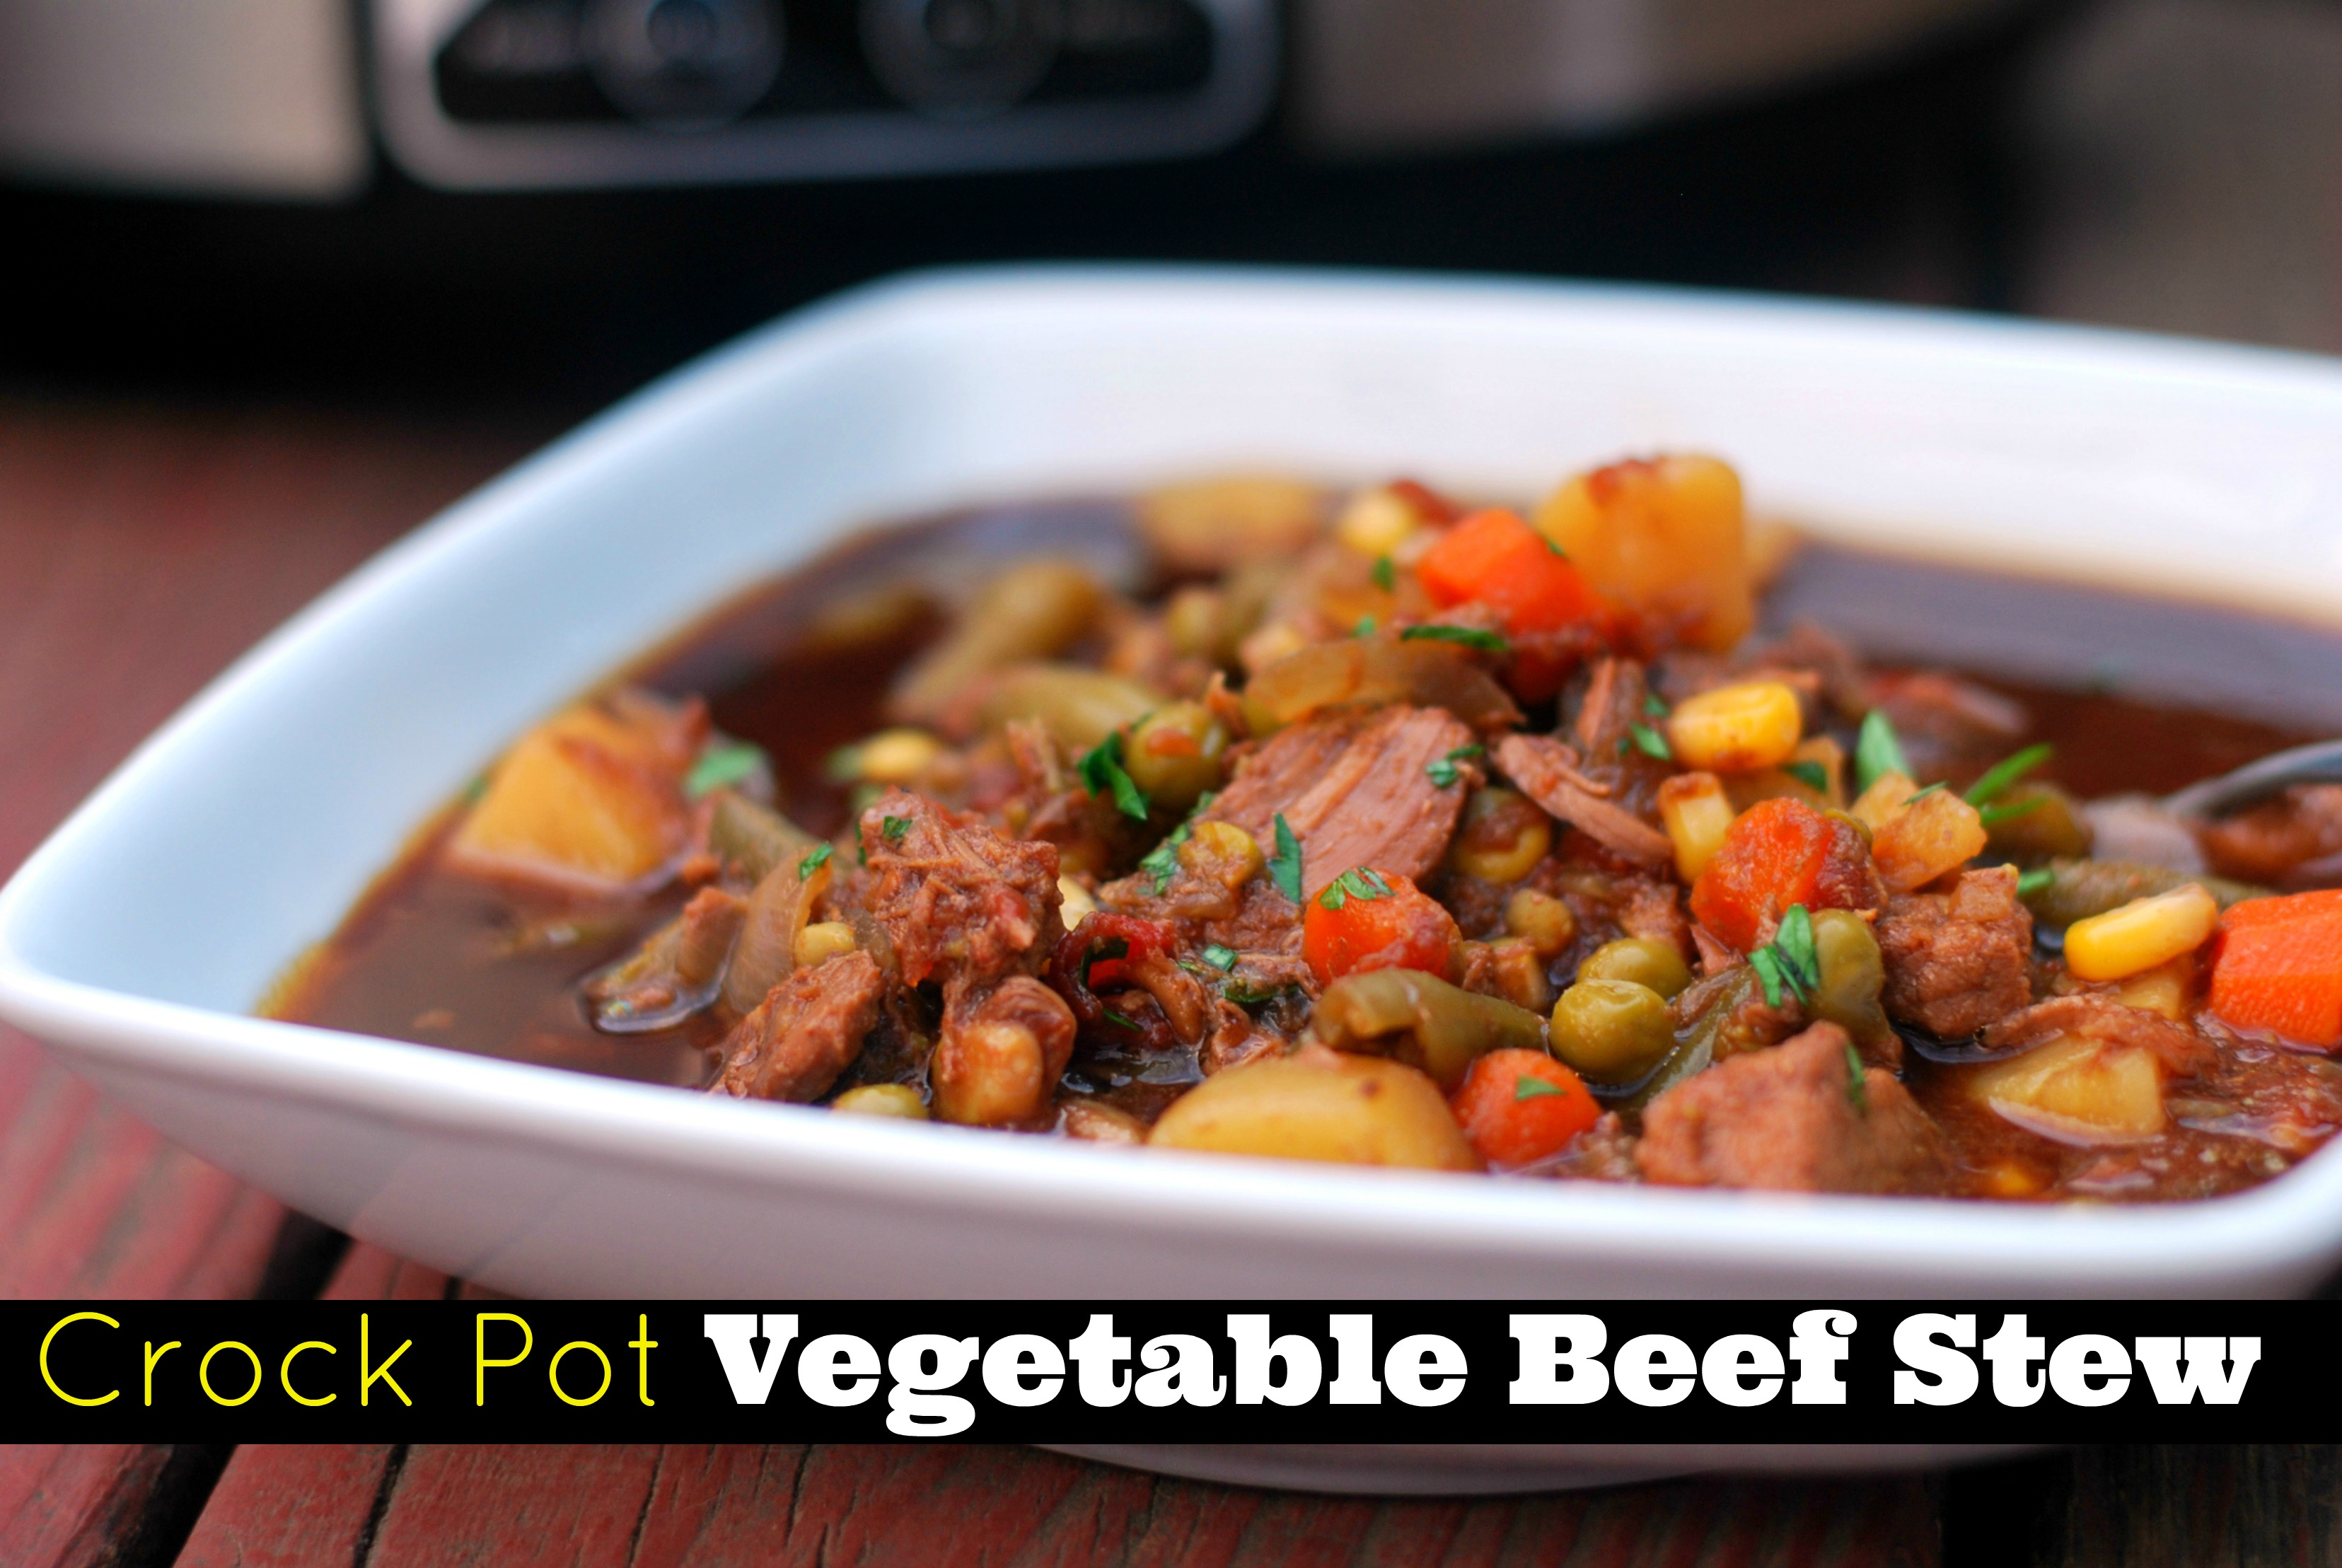 Crock Pot Vegetable Beef Stew